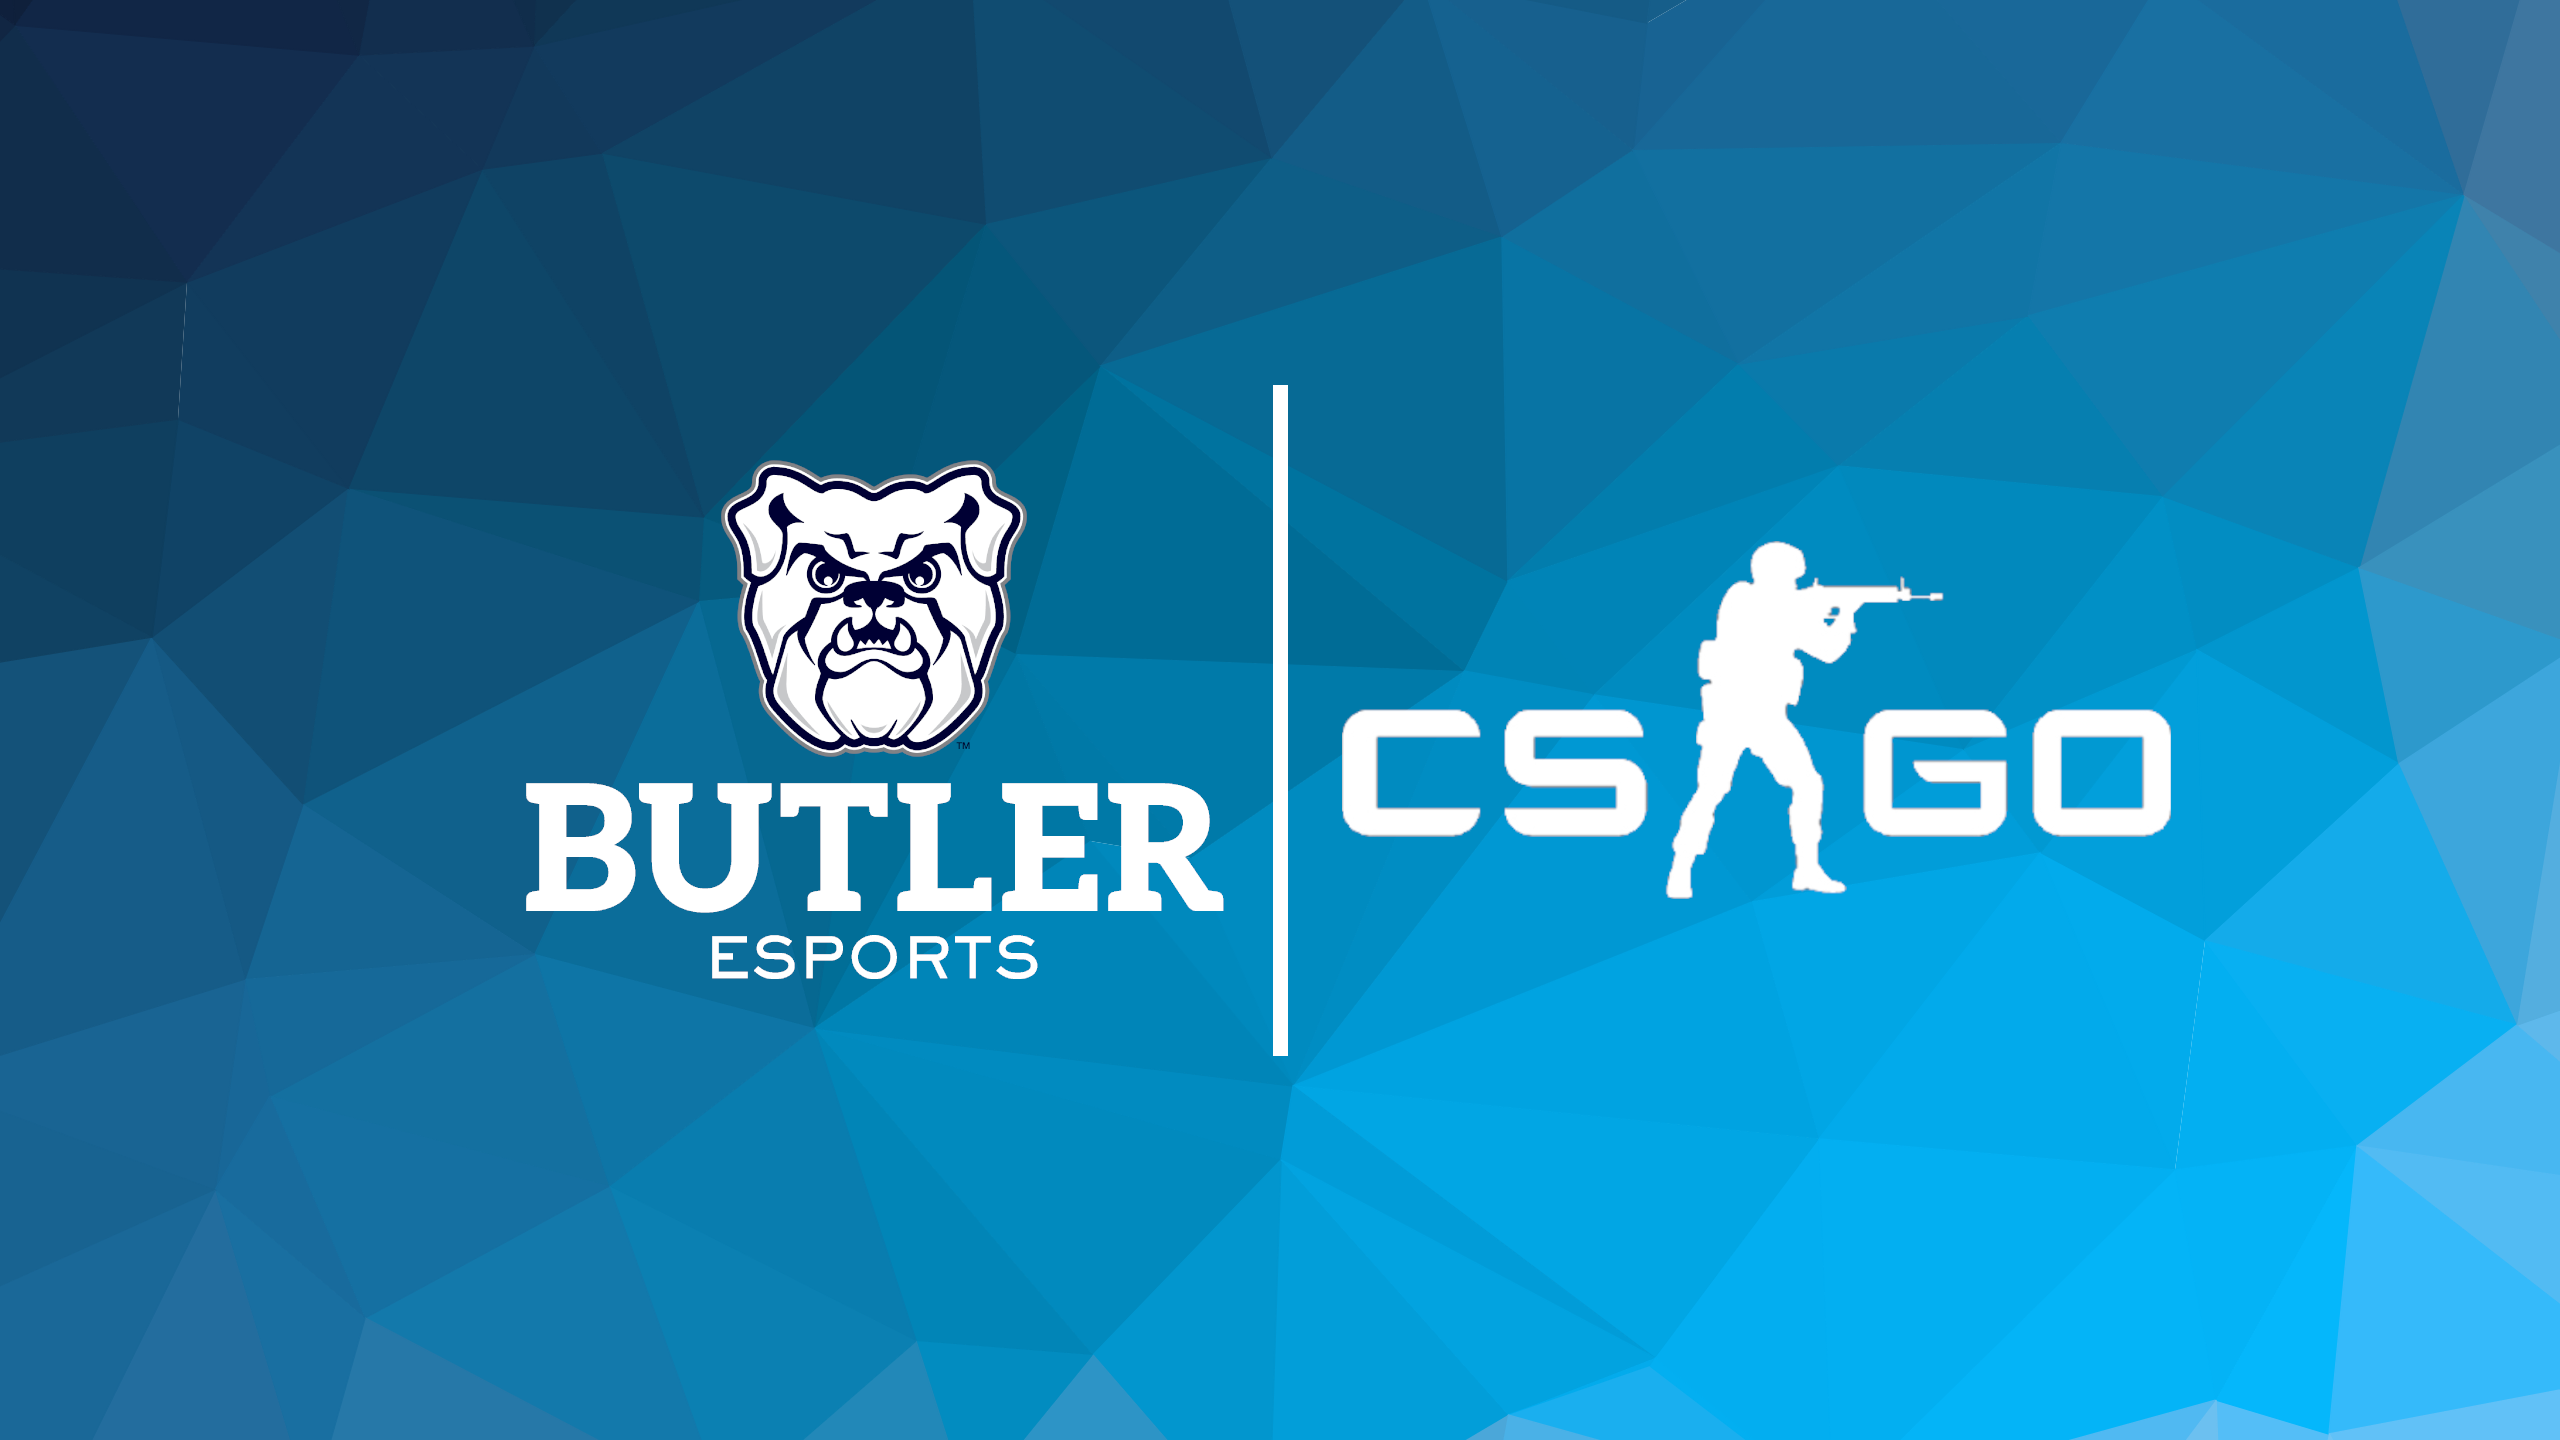 Butler CS:GO vs University of Michigan